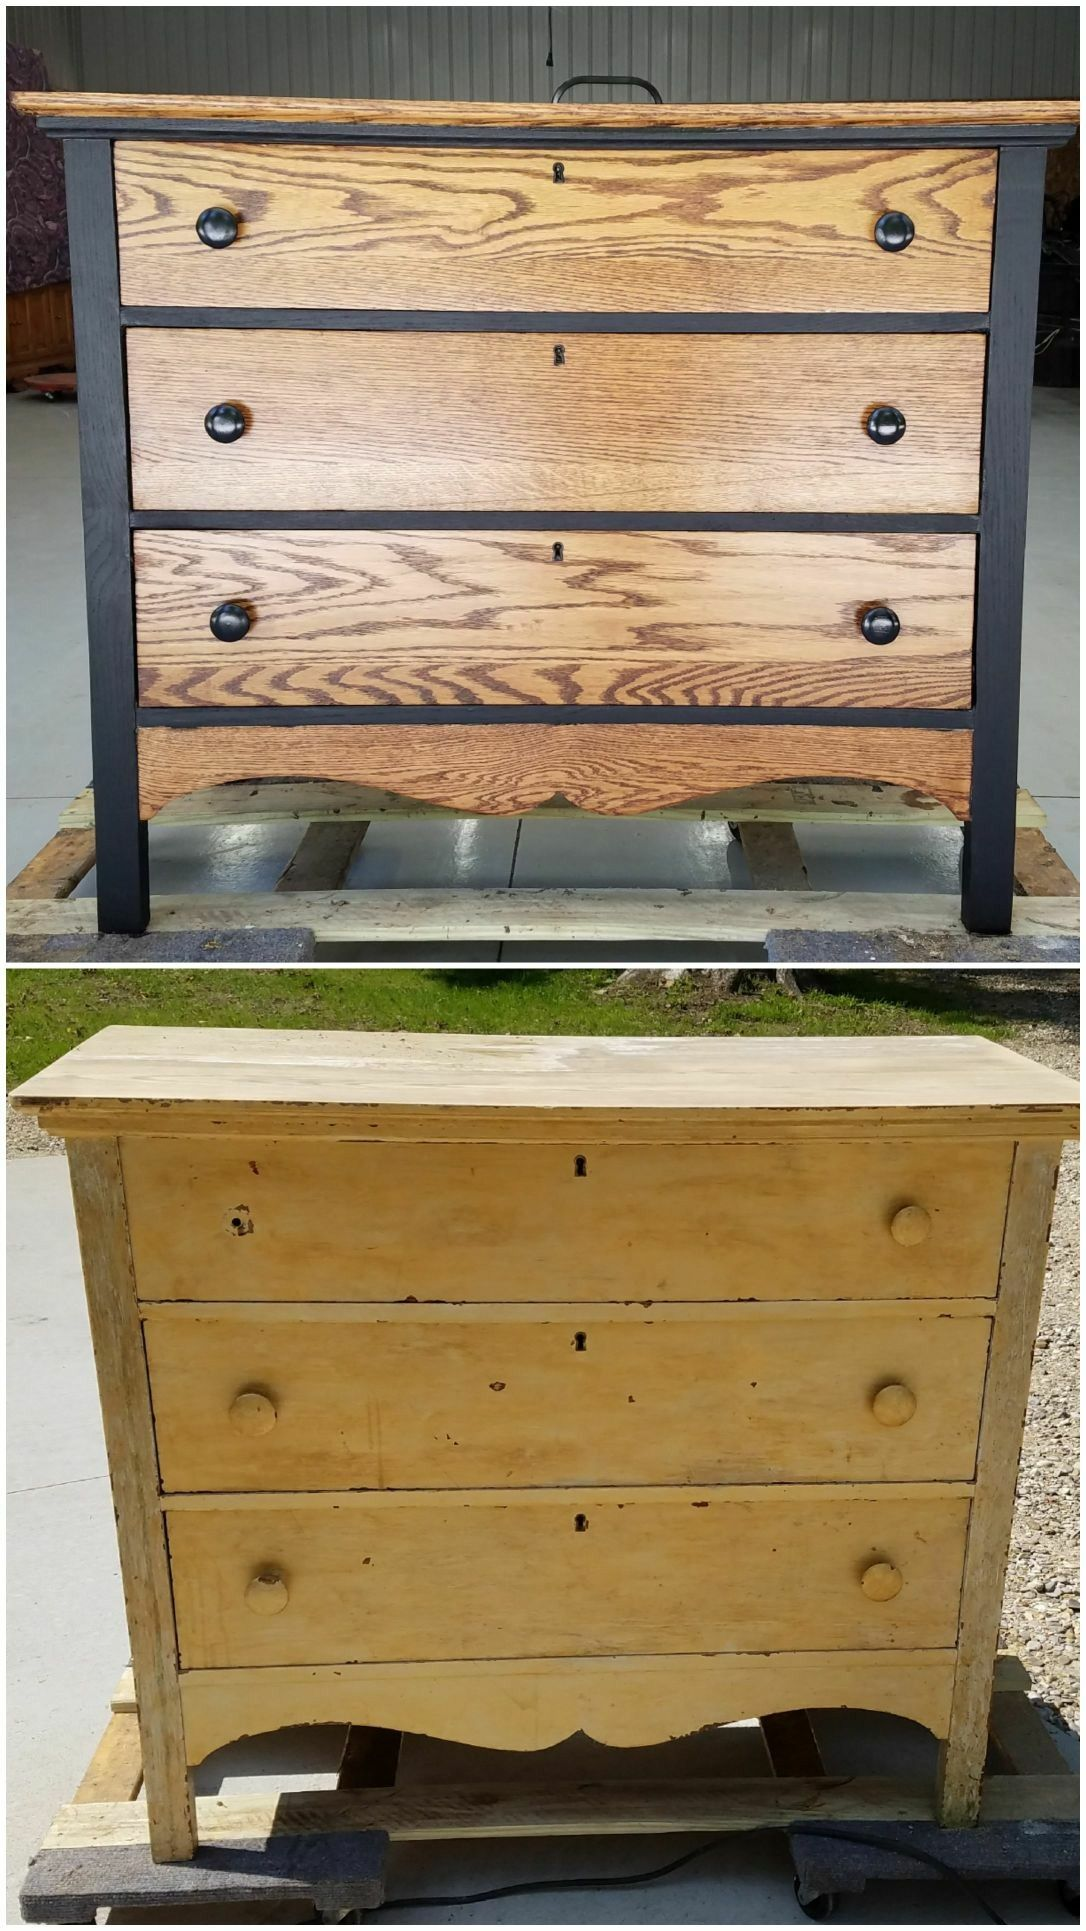 Refinished Antique Dresser From Manistee Mfg Company In Manistee